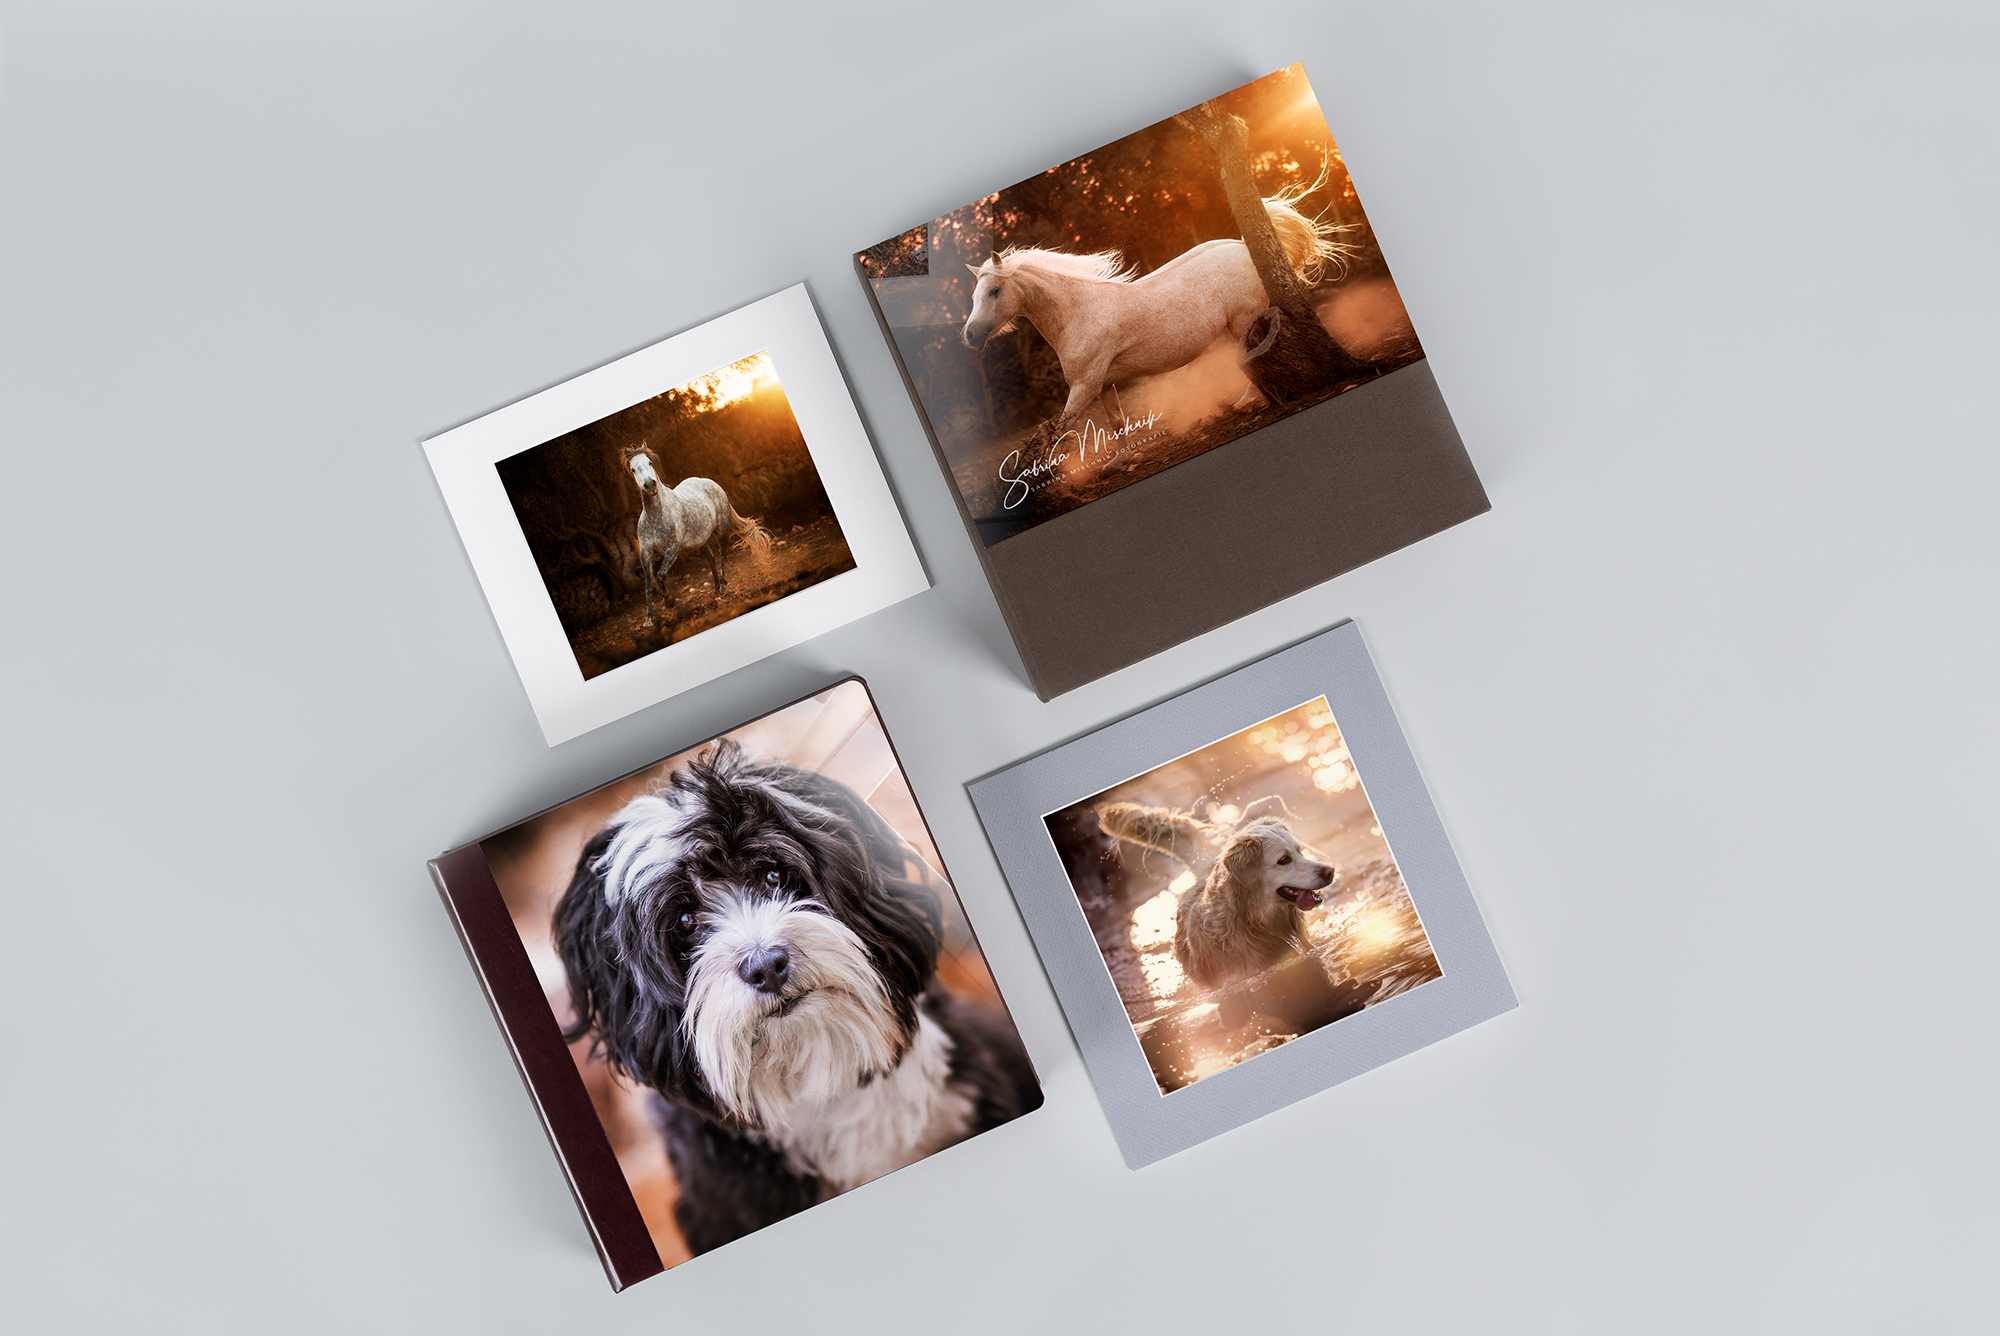 acrylic print products for equine photography and dog photography